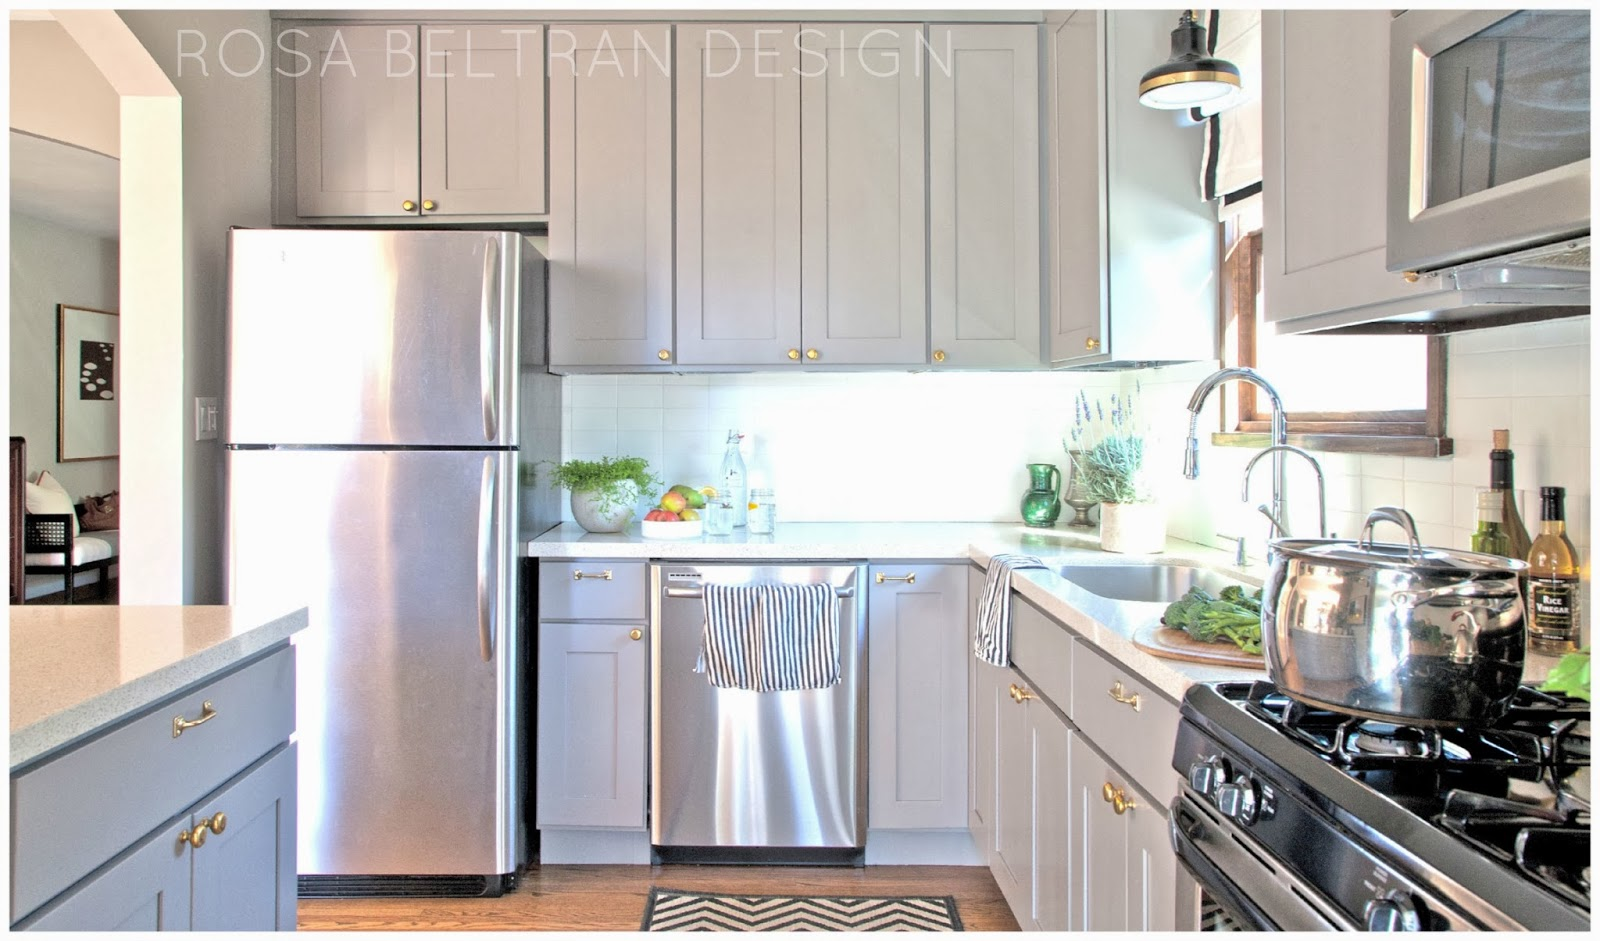 Rosa beltran design diy painted kitchen cabinets for Diy kitchen cabinets